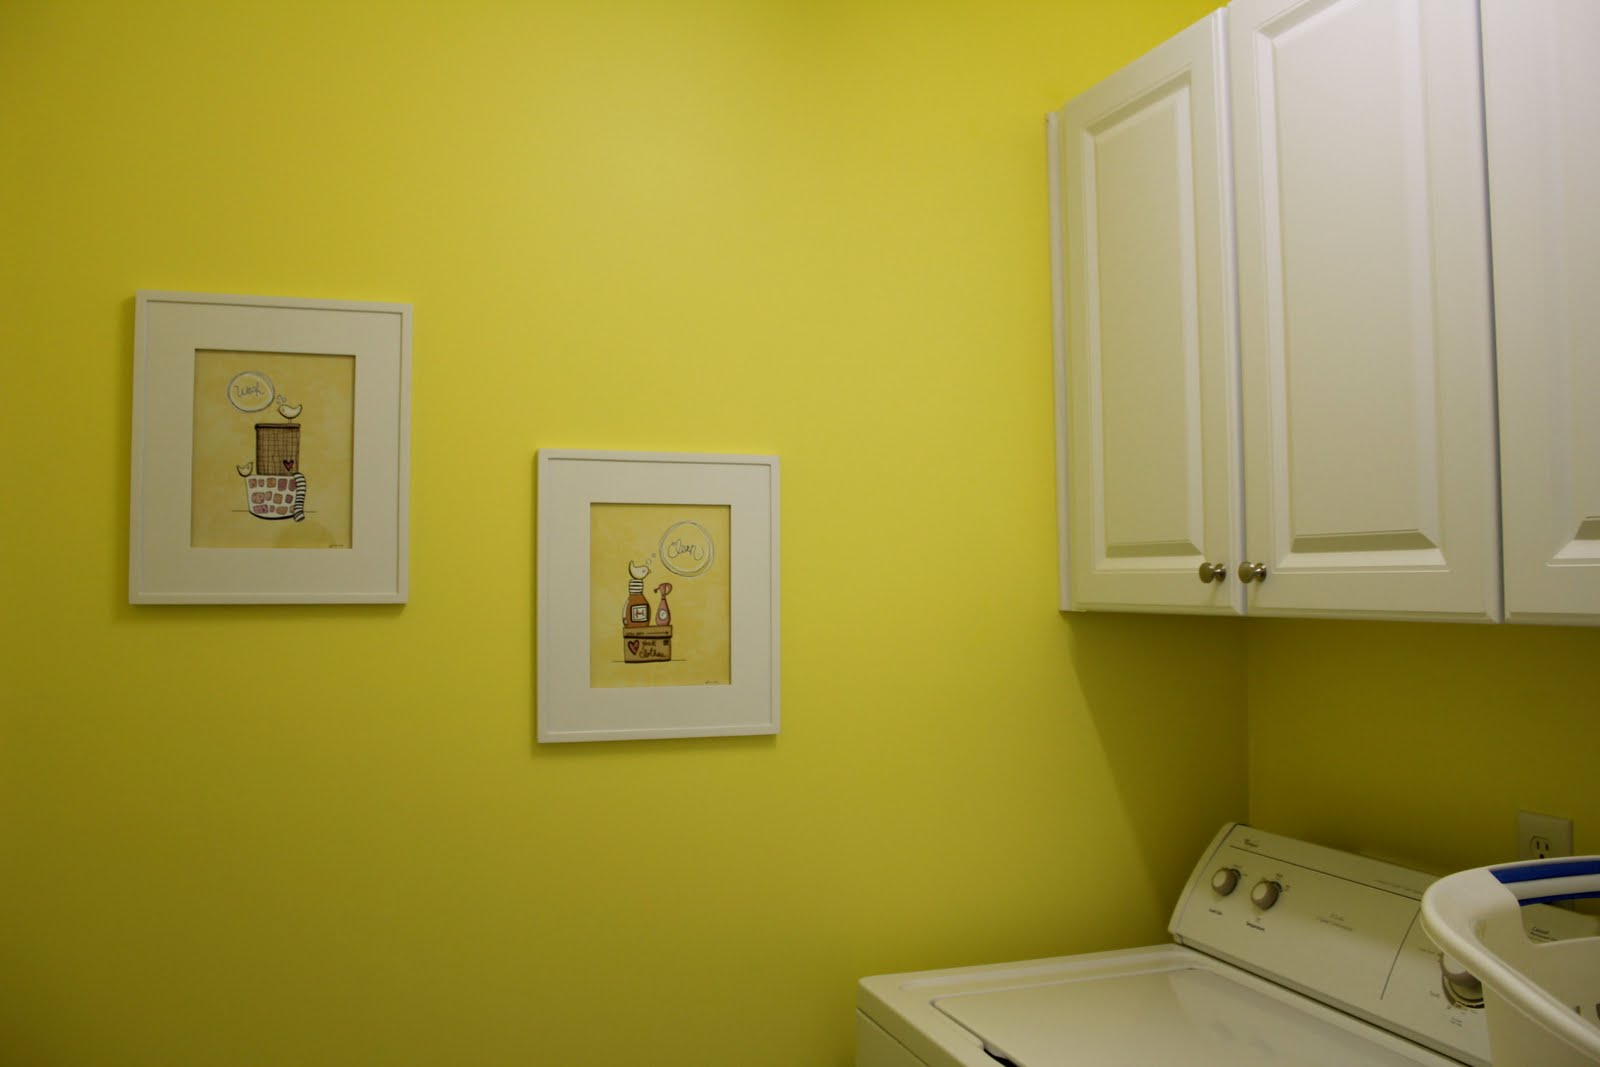 Beauty in the Ordinary: Cute Laundry Room Art